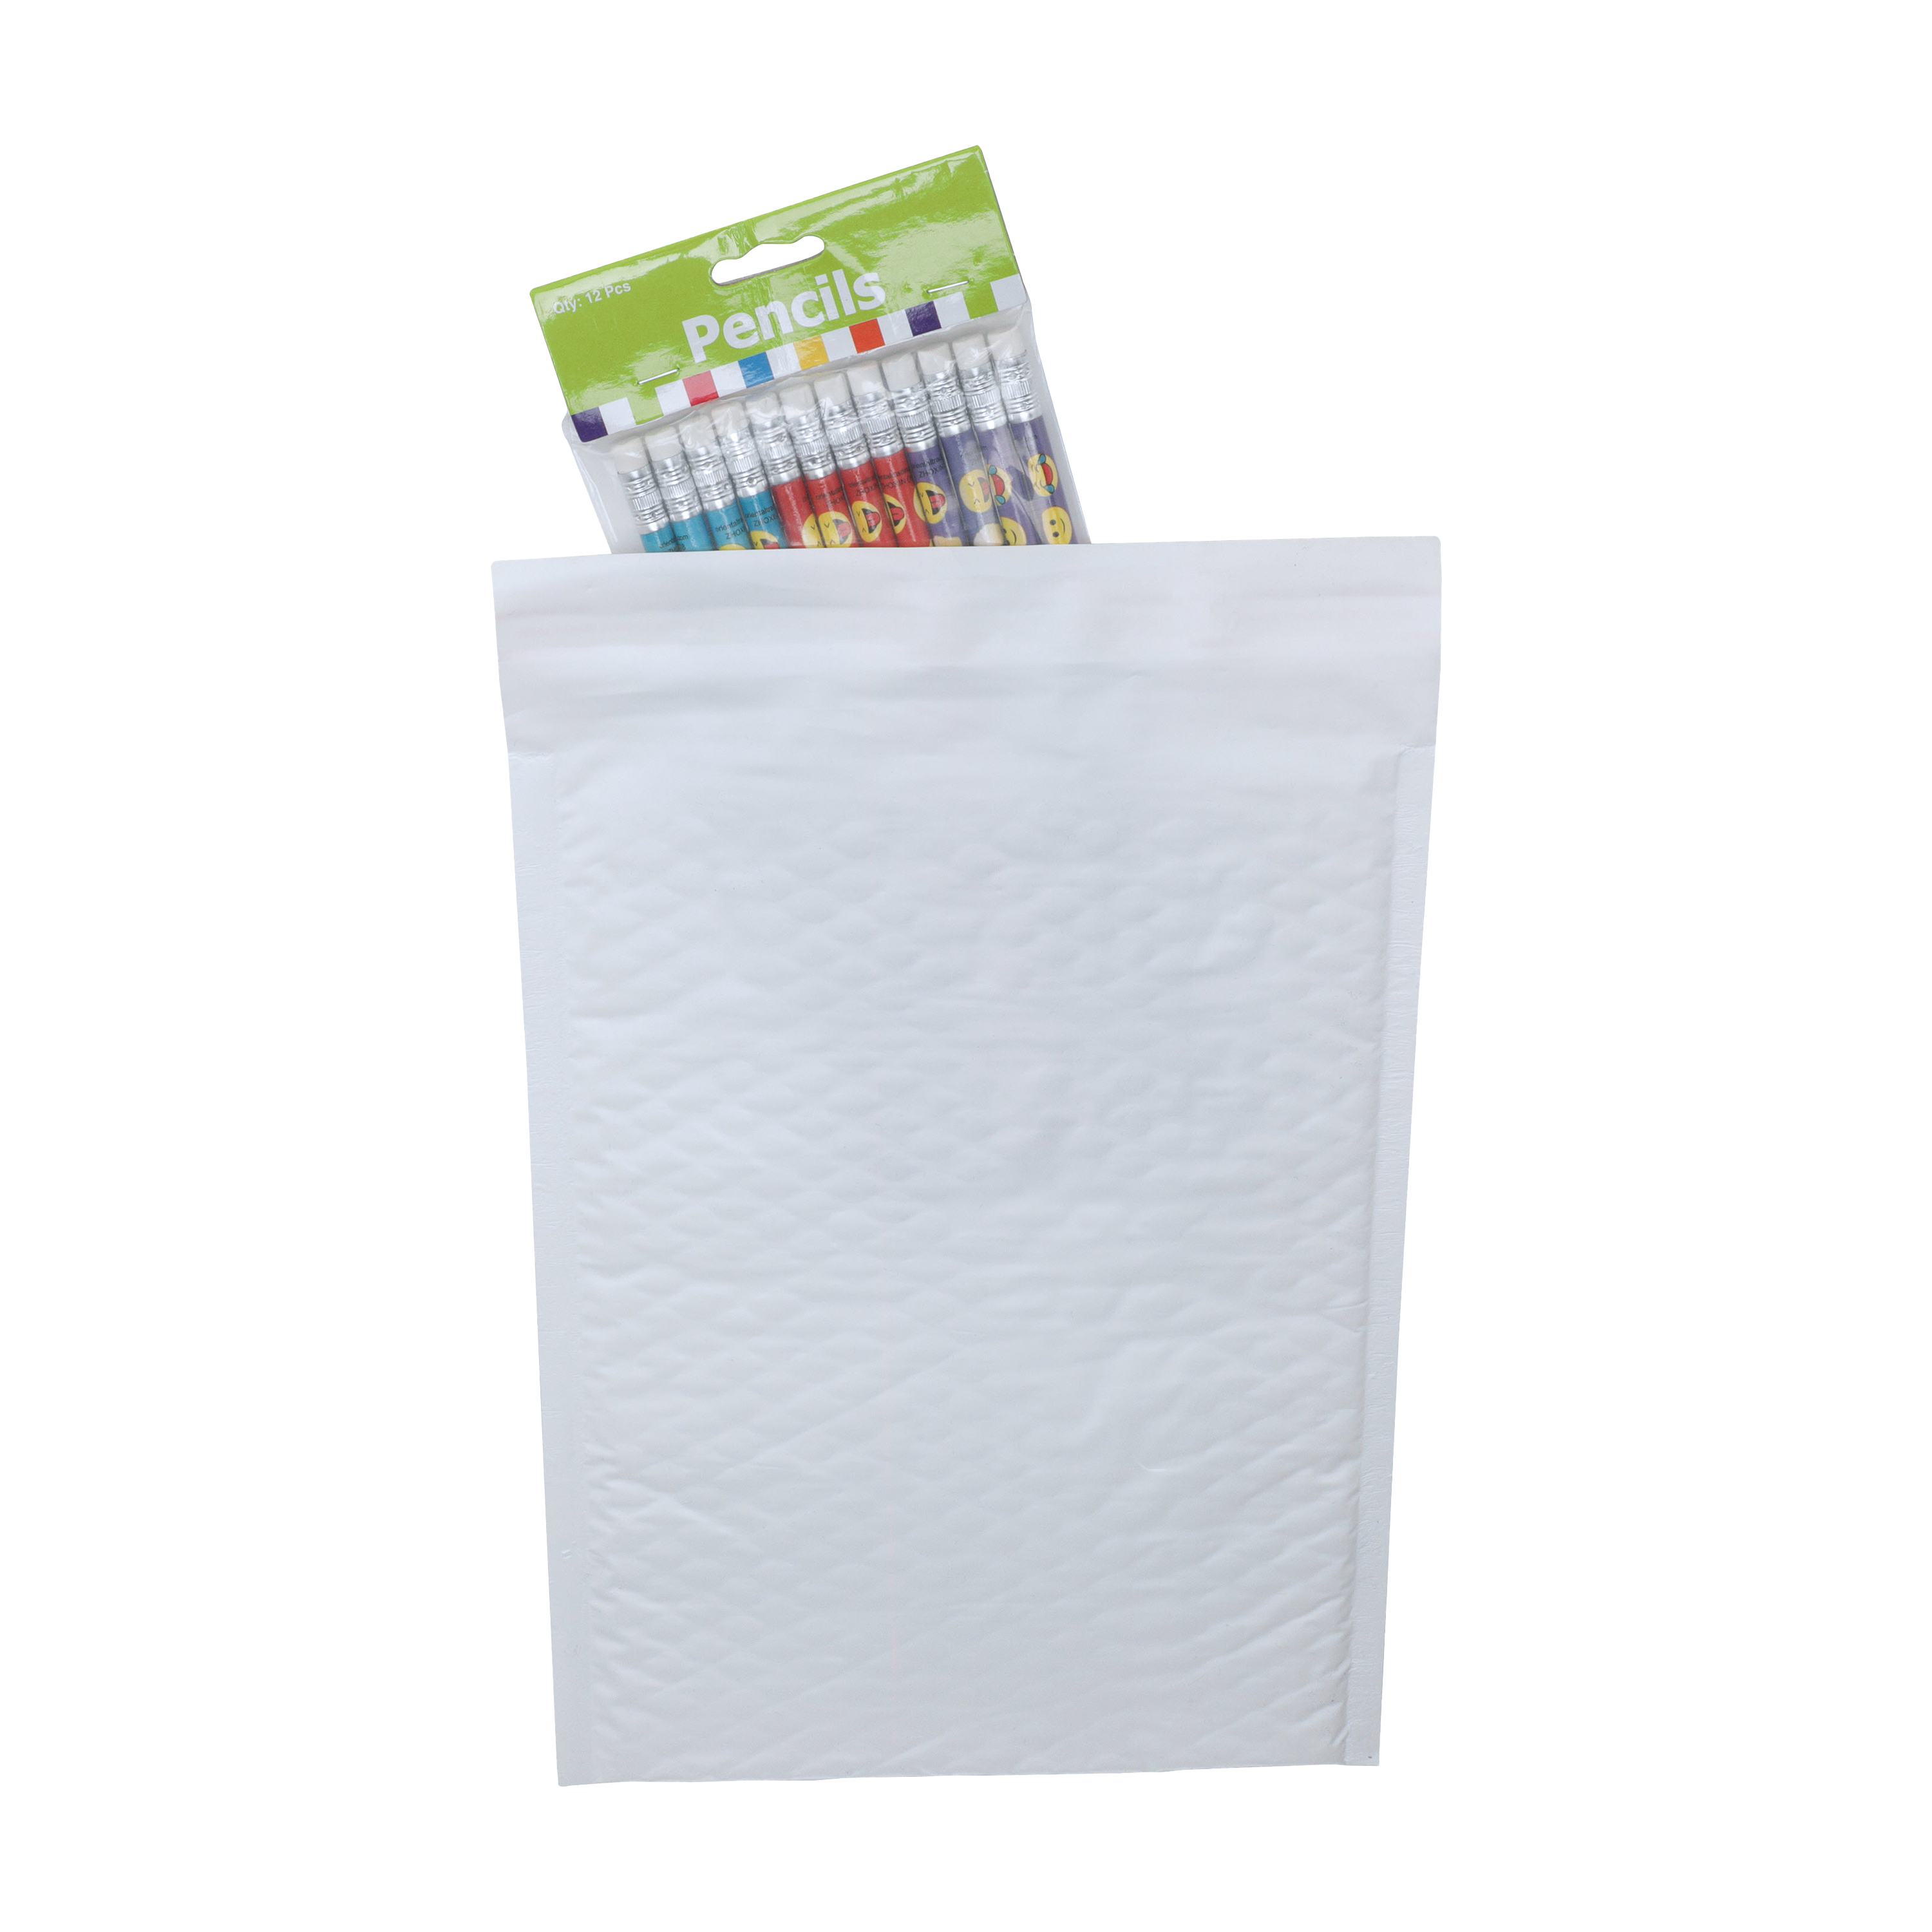 white poly mailer with pencils